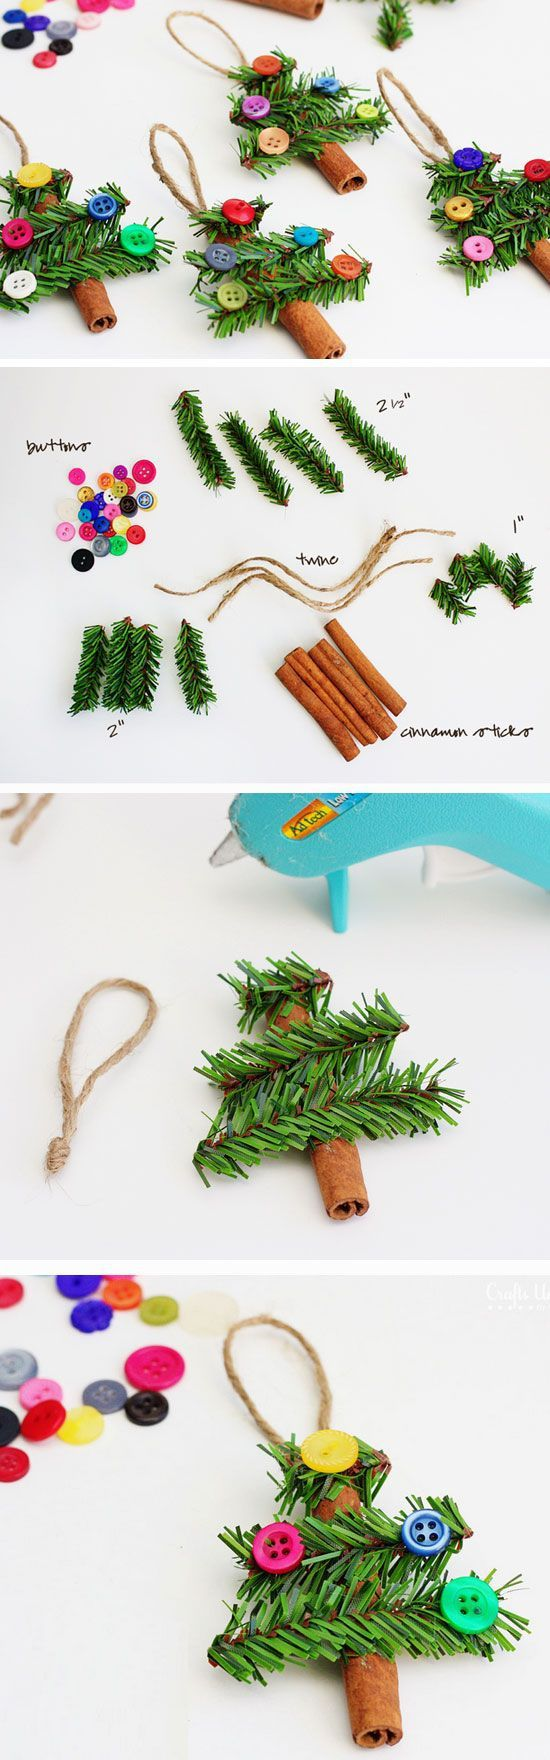 DIY Craft: Cinnamon Stick Trees. Easy and Fun DIY Christmas crafts for You and Your Kids to Have Fun.